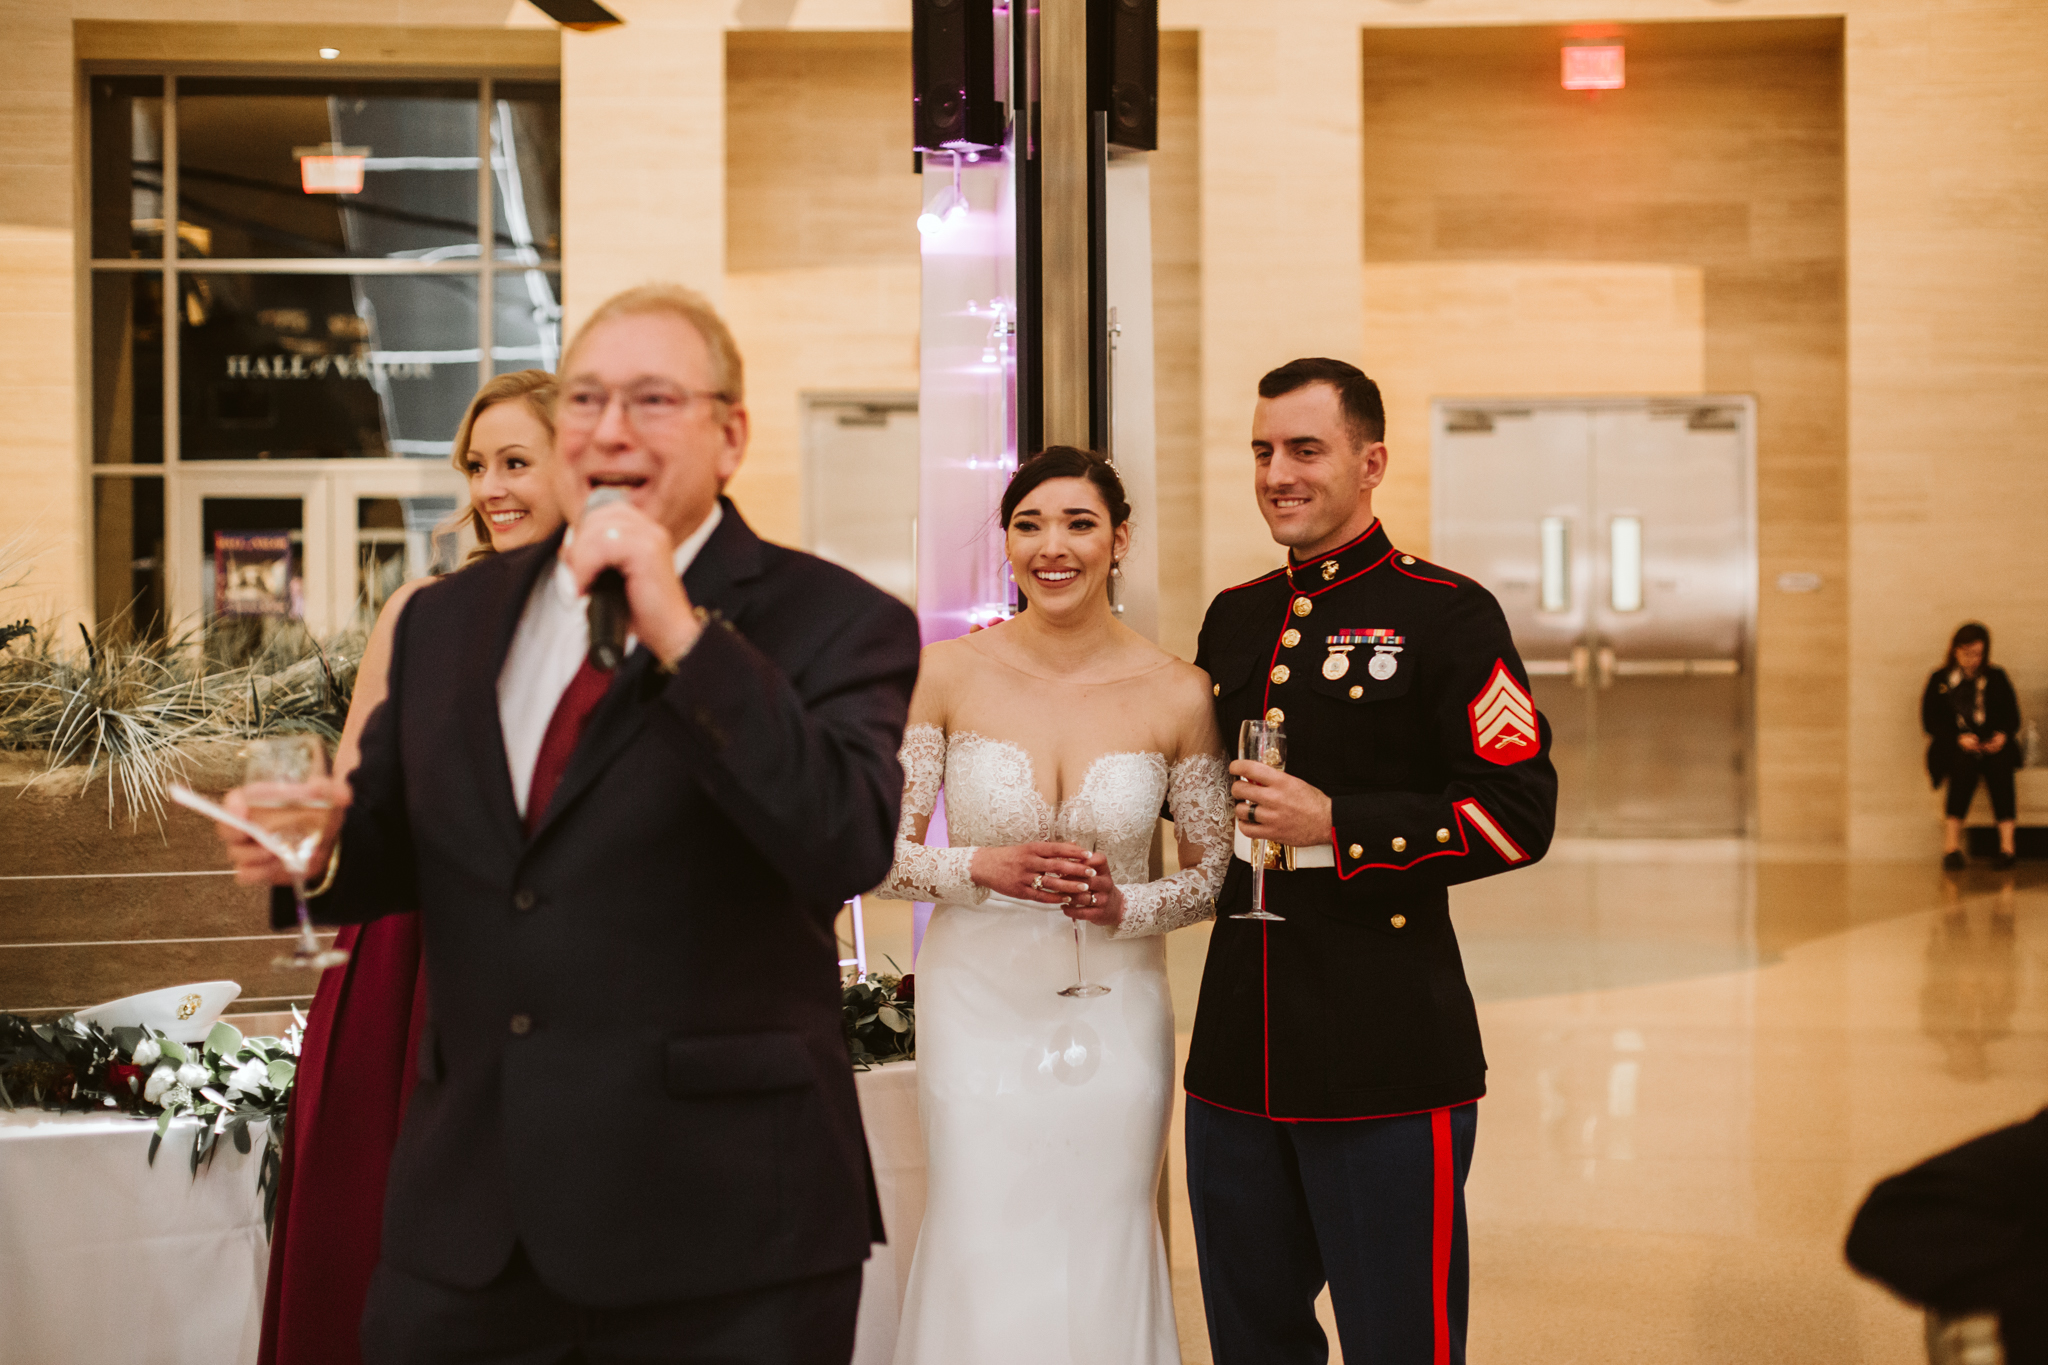 solinsky_wedding_national_museum_of_marine_corp-32.jpg